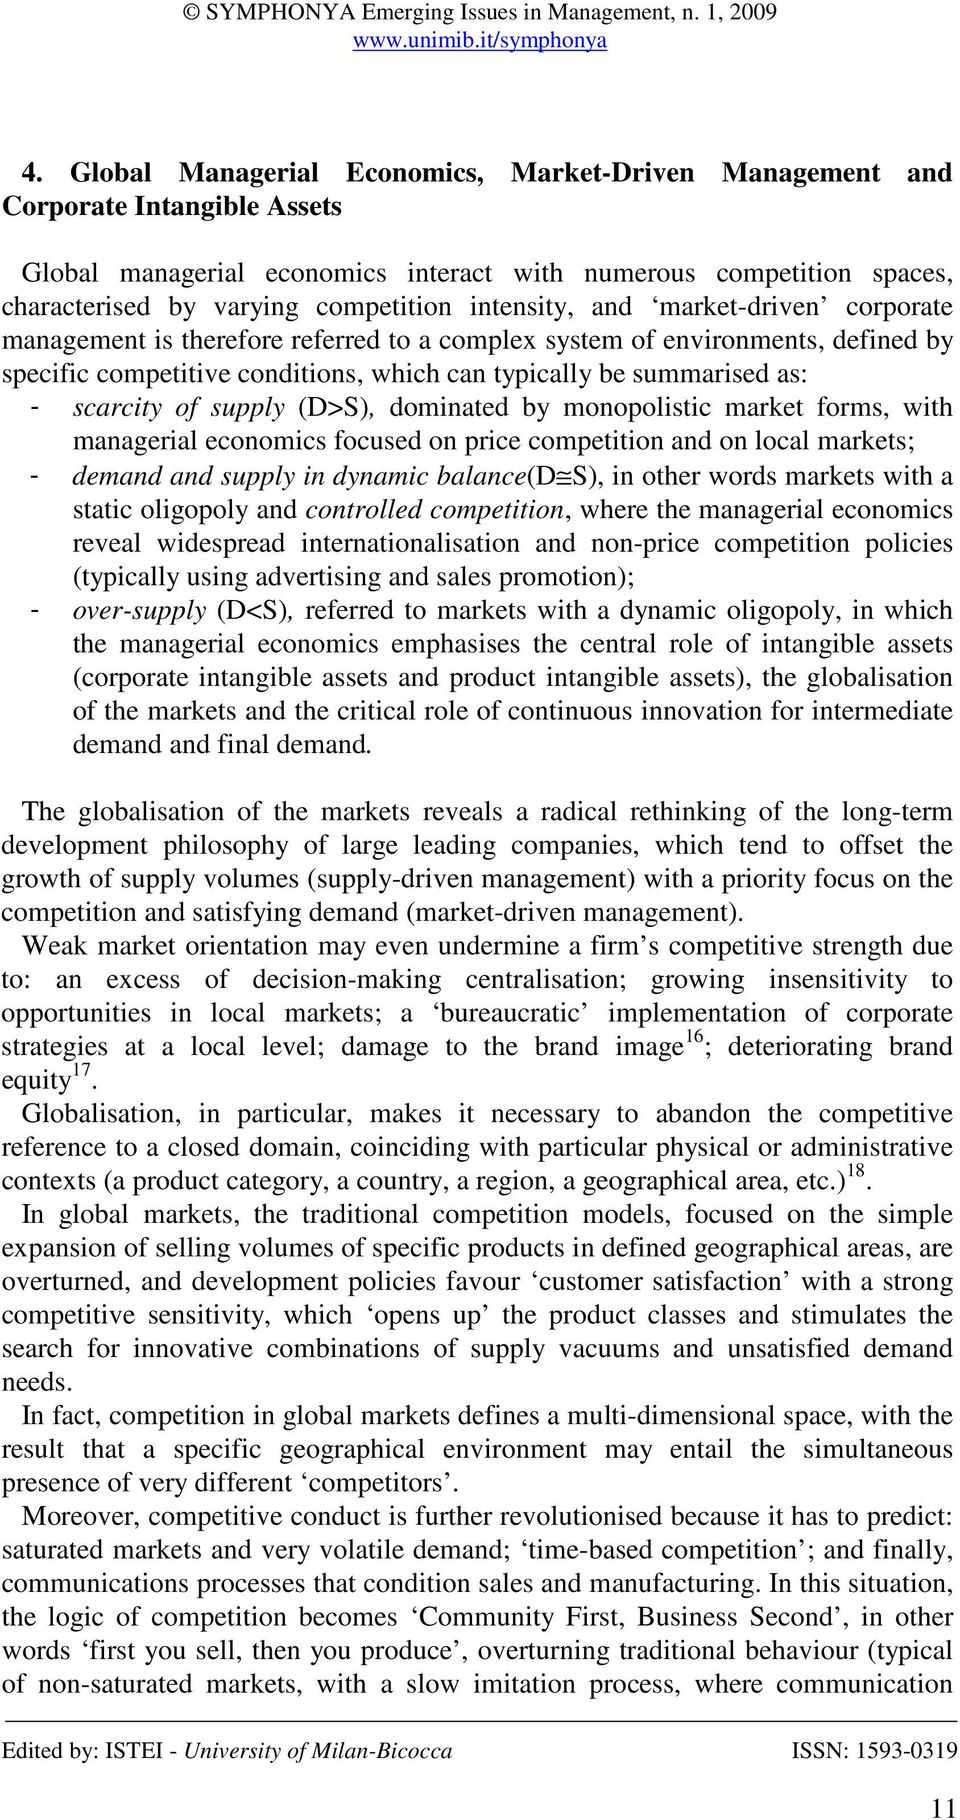 scarcity of supply (D>S), dominated by monopolistic market forms, with managerial economics focused on price competition and on local markets; - demand and supply in dynamic balance(d S), in other